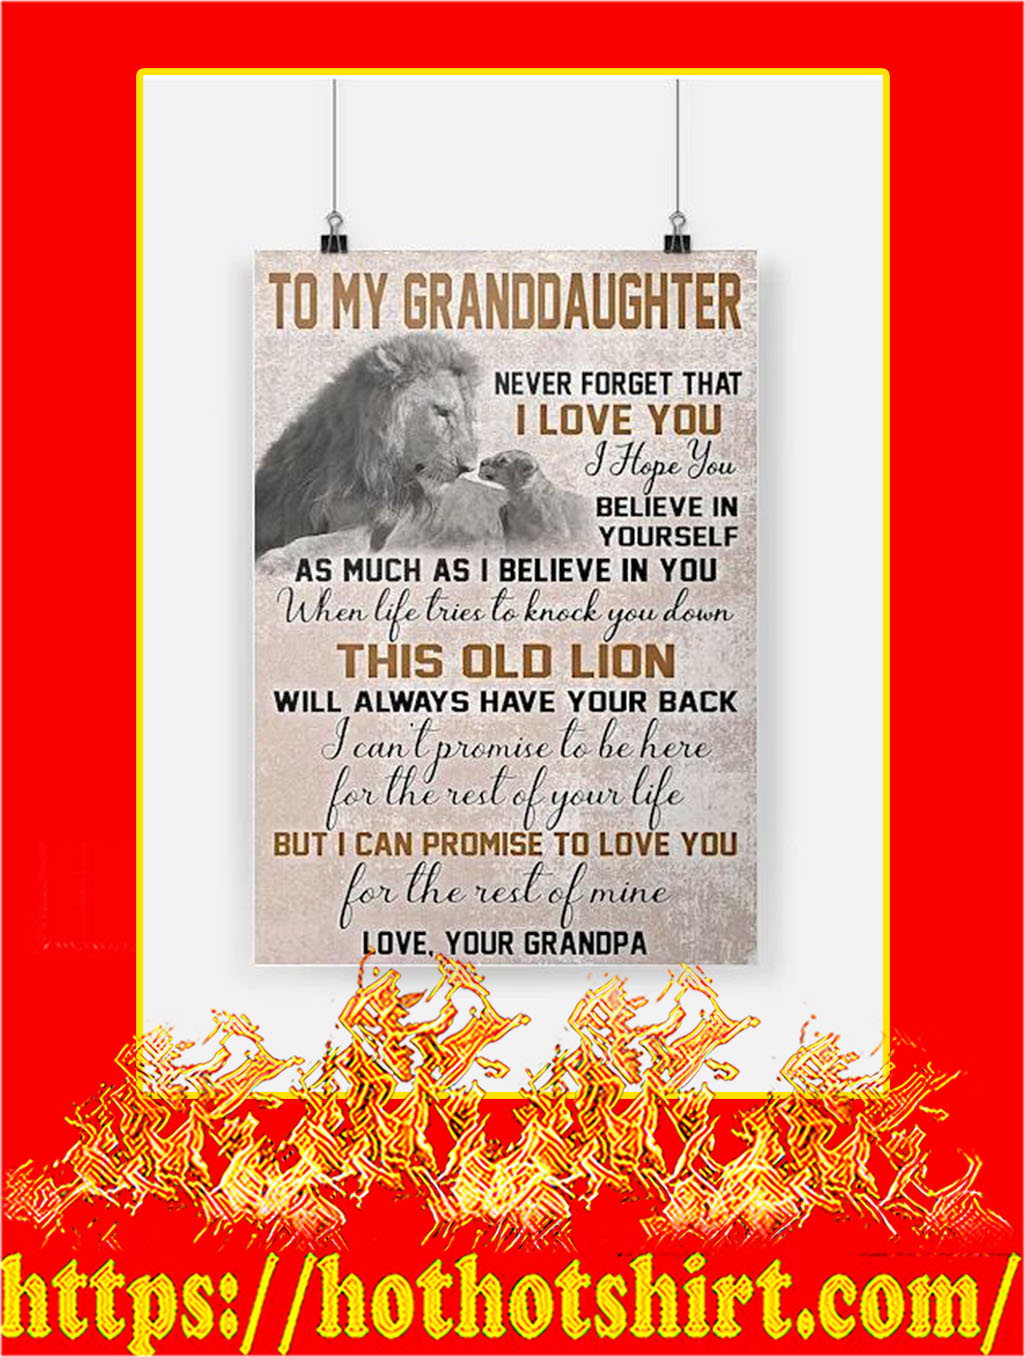 Lion To My Granddaughter Grandpa Poster - A4